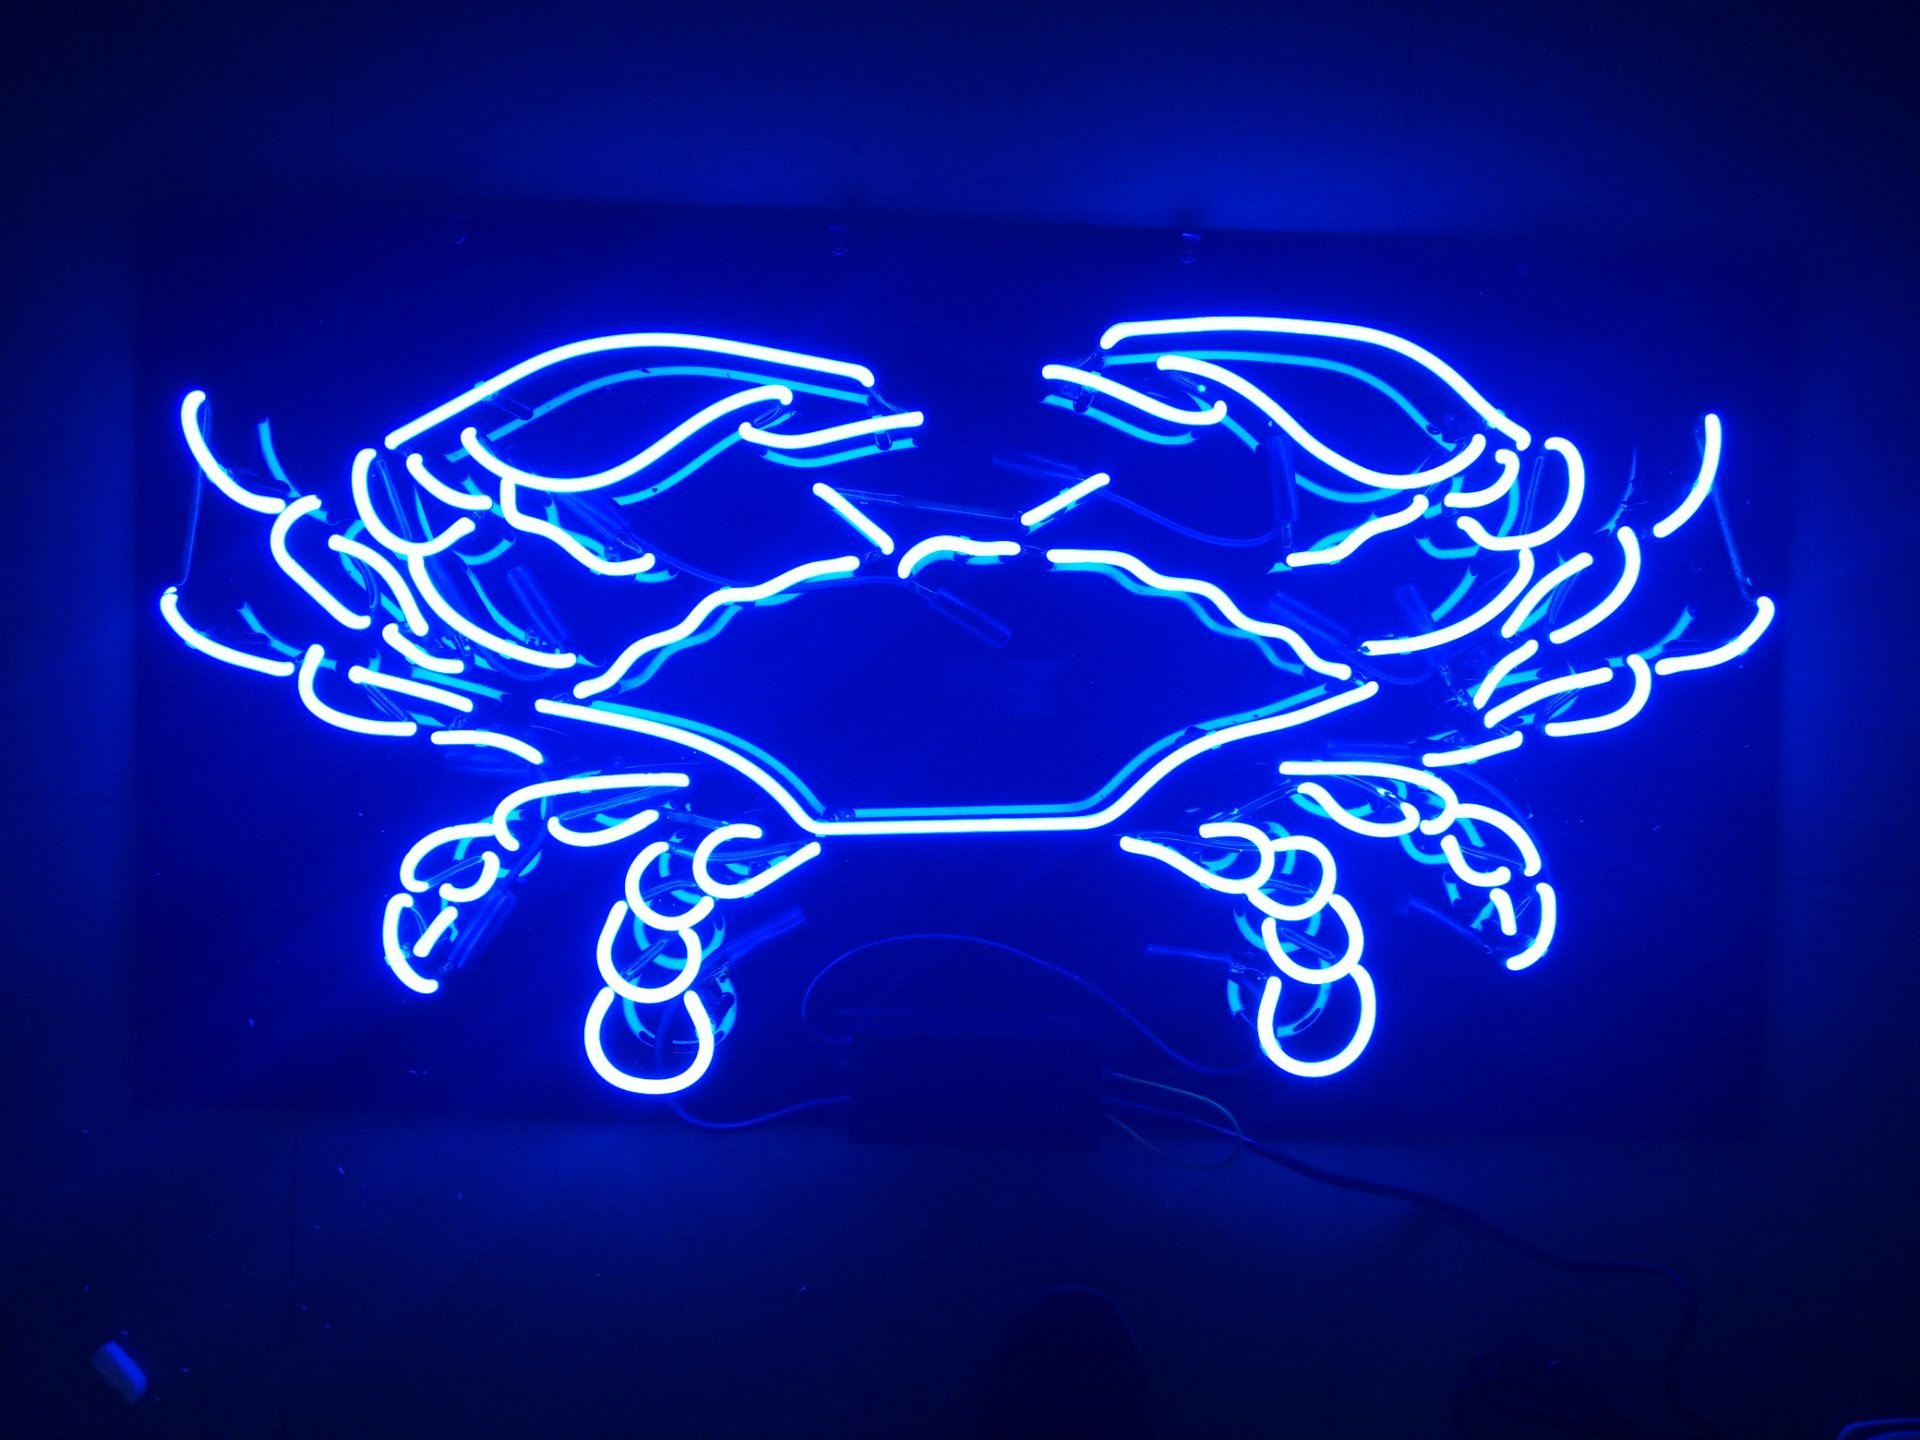 LinC Neon Sign- Crab Home Decor Light for Bedroom Garage Beer Bar and Nightclub, Real Glass Neon Light Sign for Wall Decor Art (Crab)